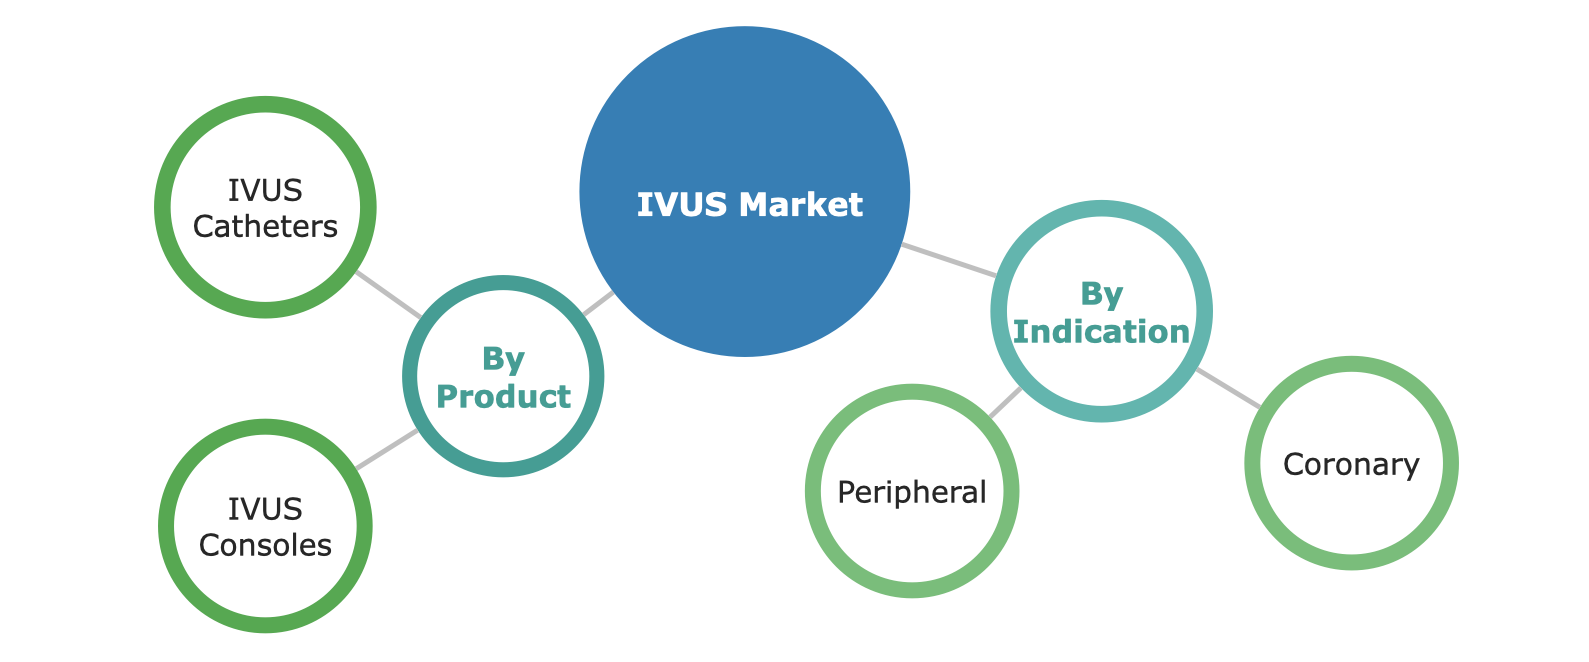 Global IVUS Market Segmentation